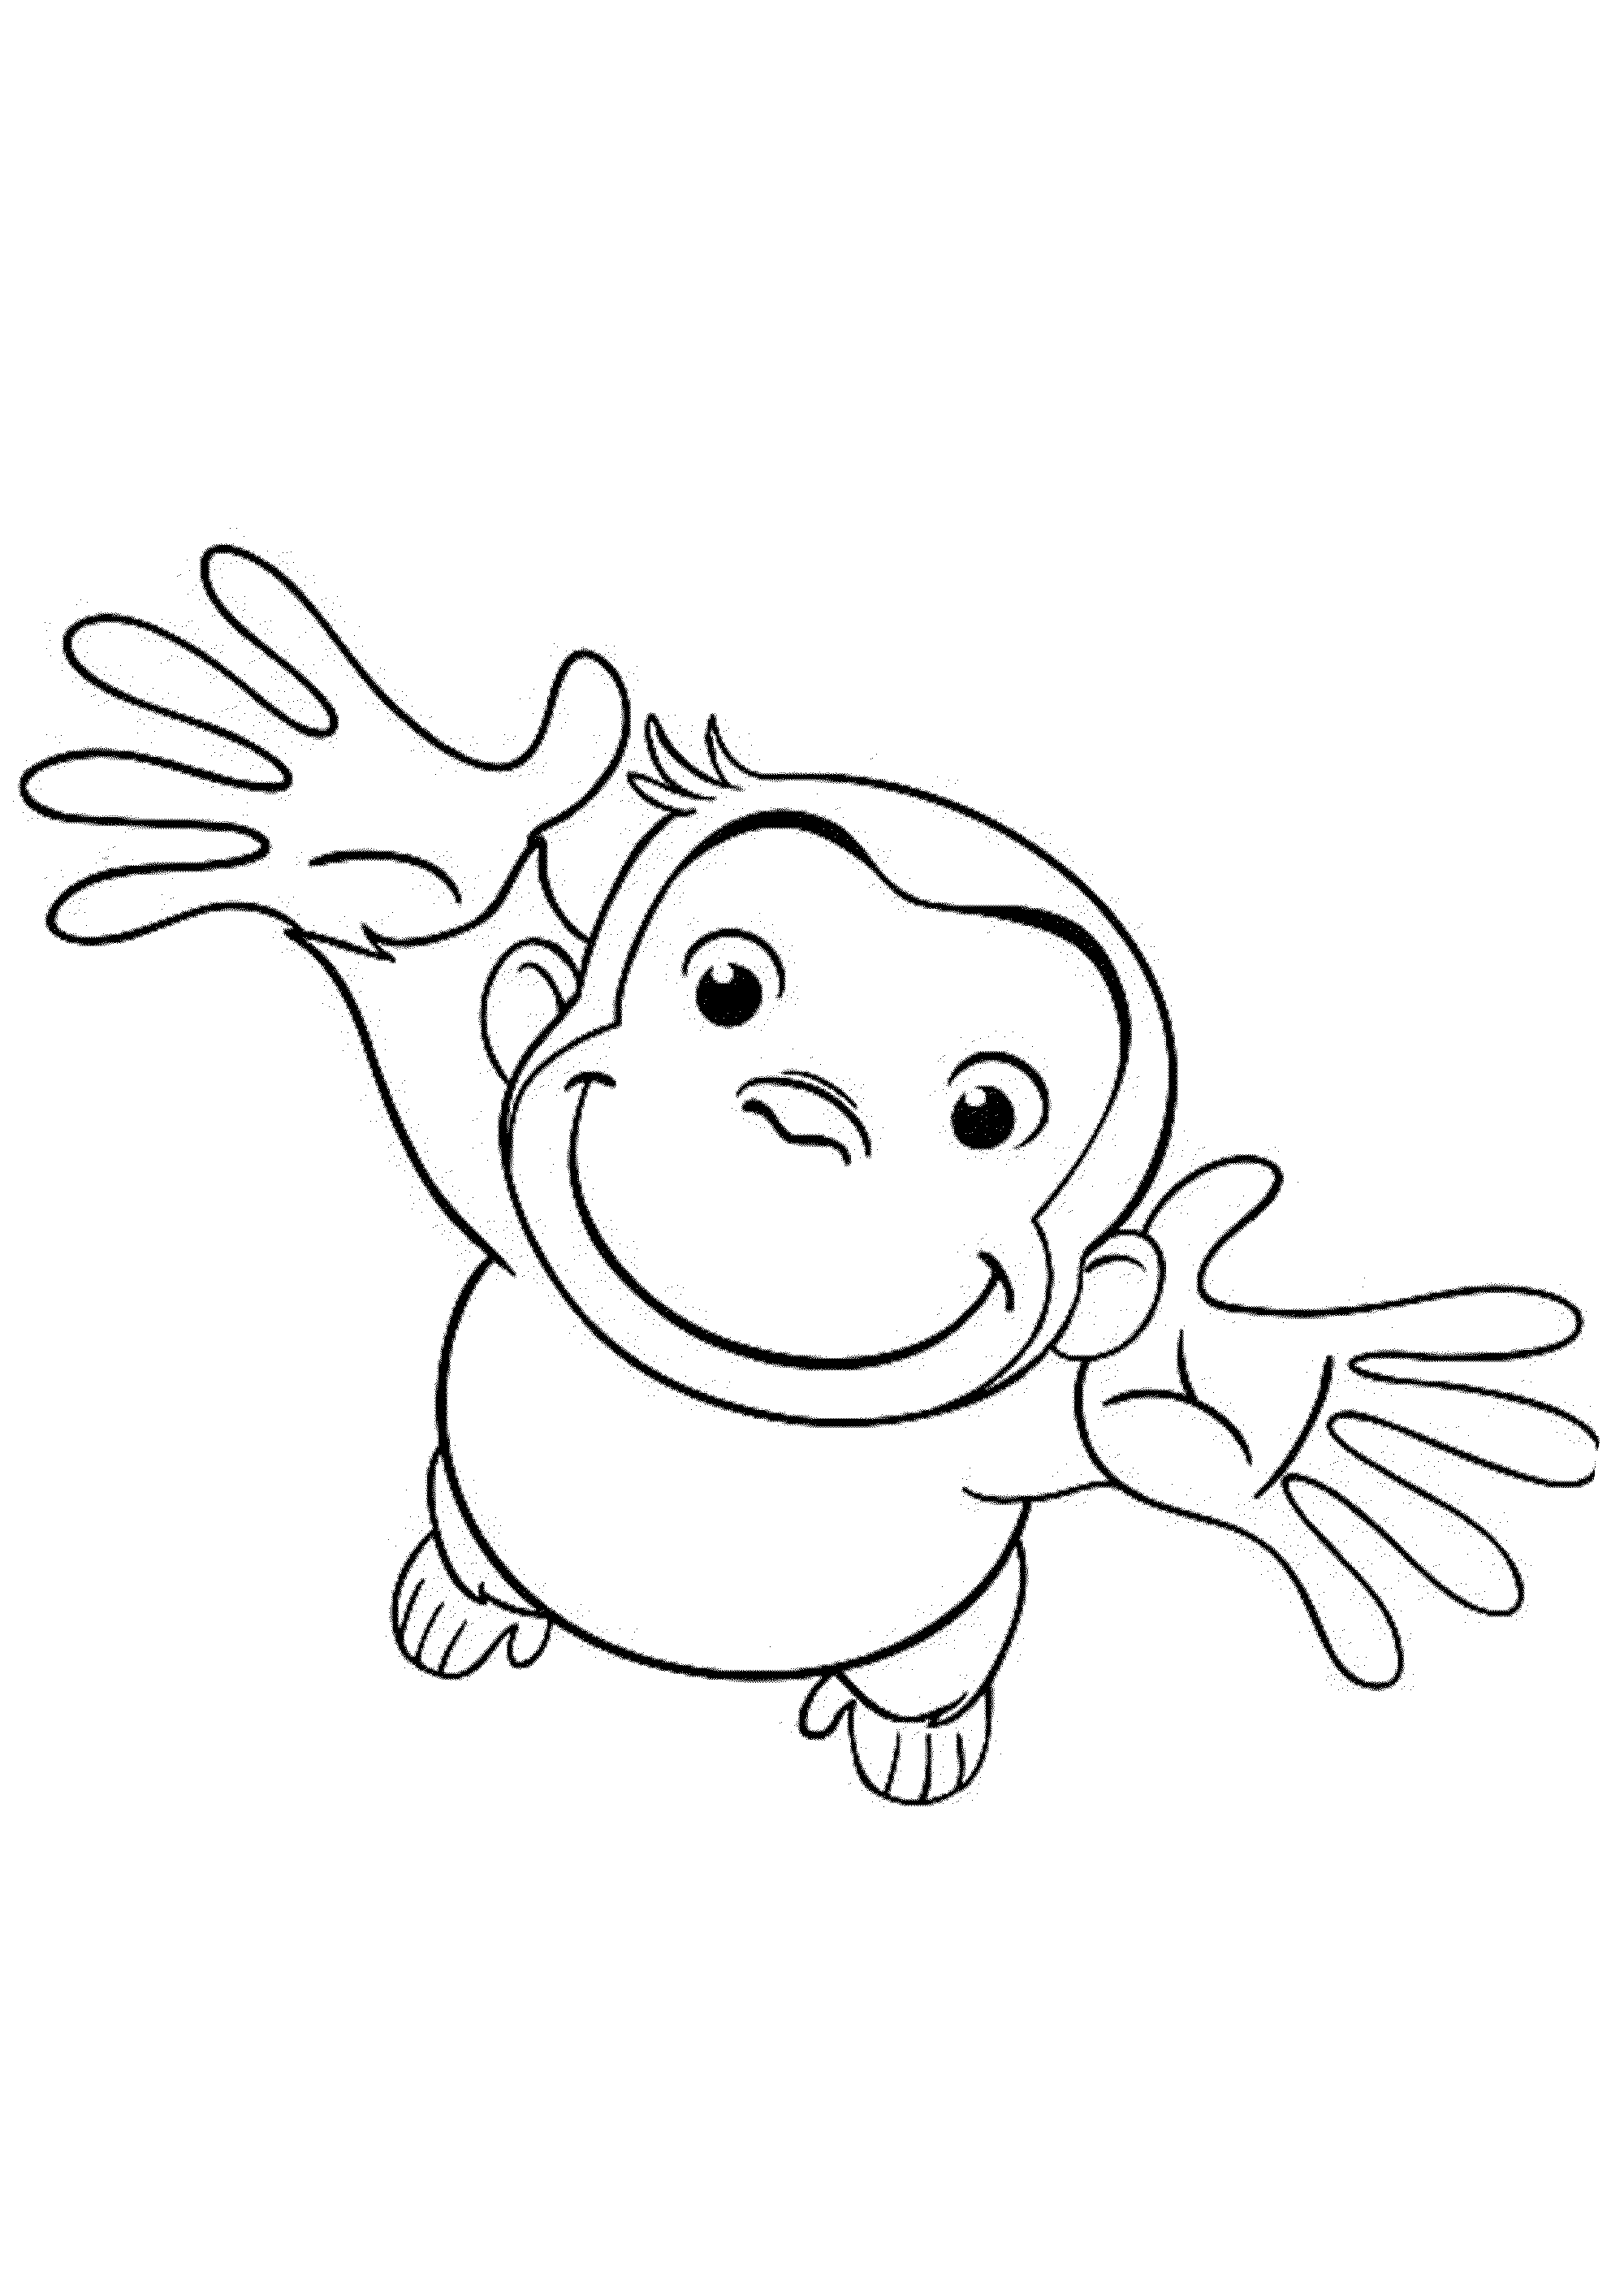 It is an image of Adorable Printable Coloring Pages for Toddlers